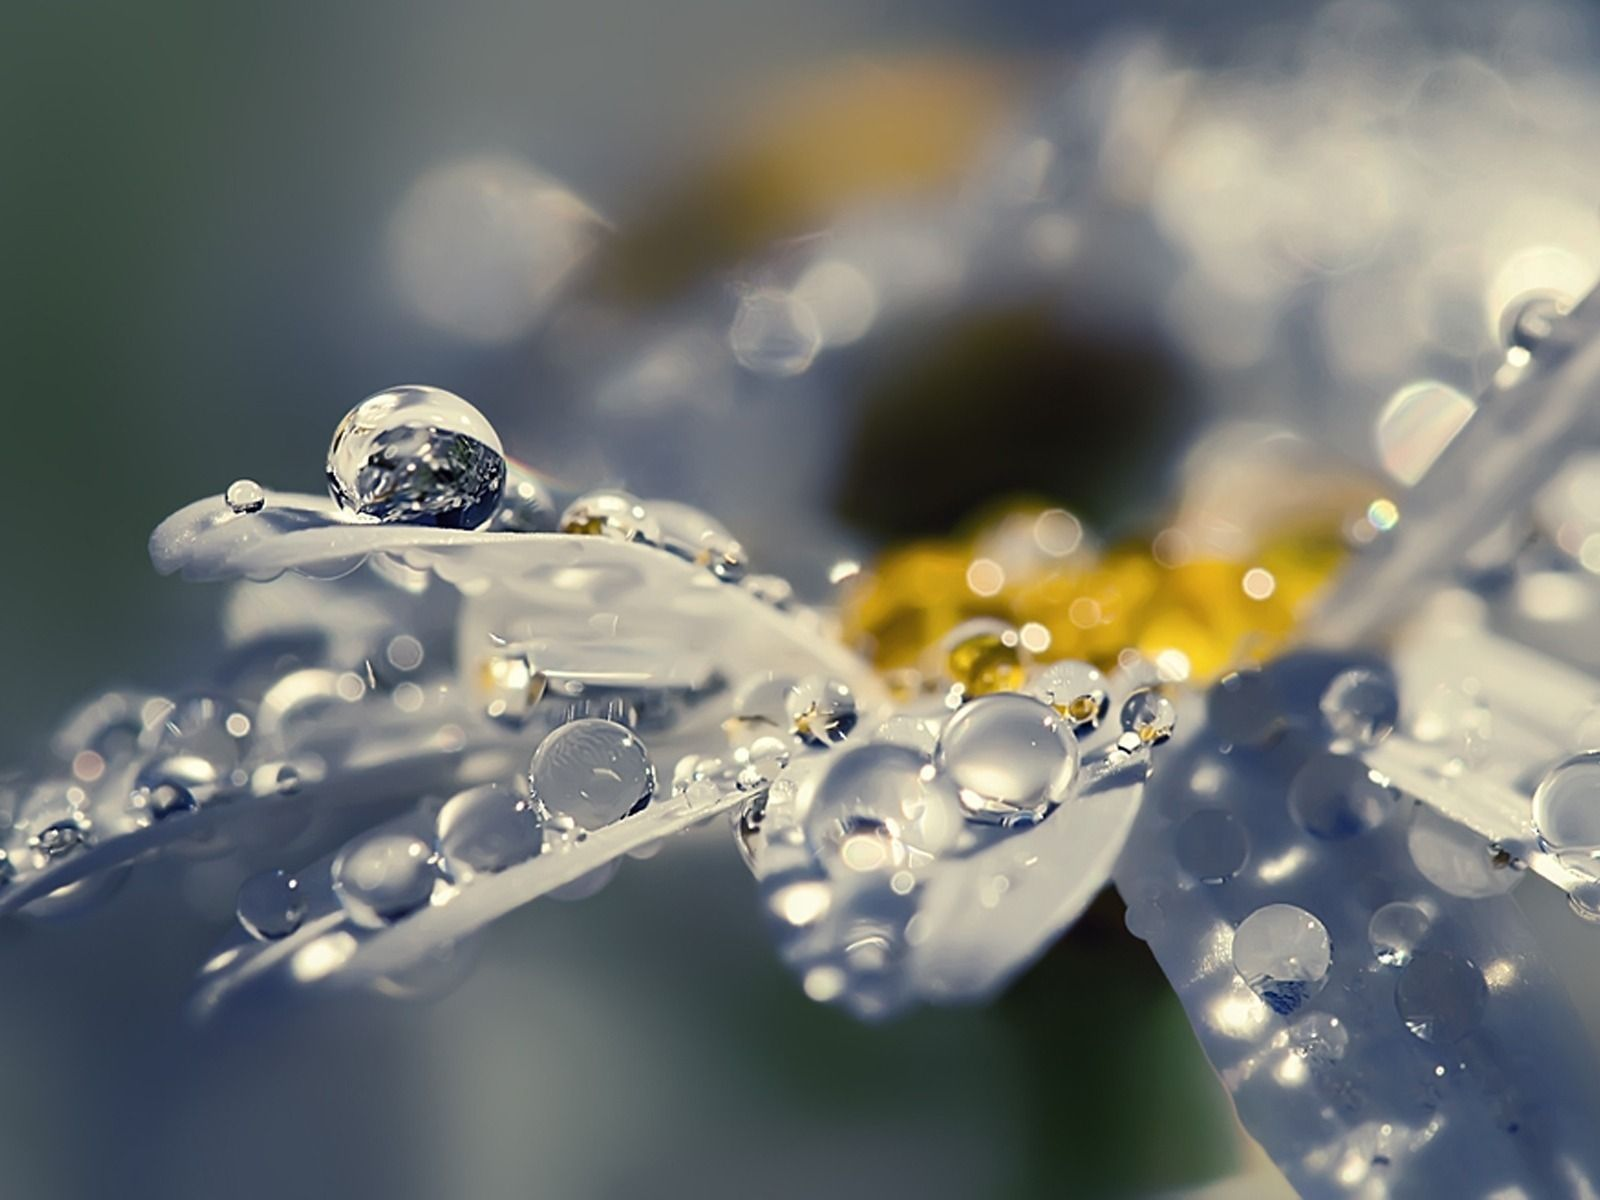 Raindrops Pictures Flower With Raindrops 1600 X 1200 Wallpaper